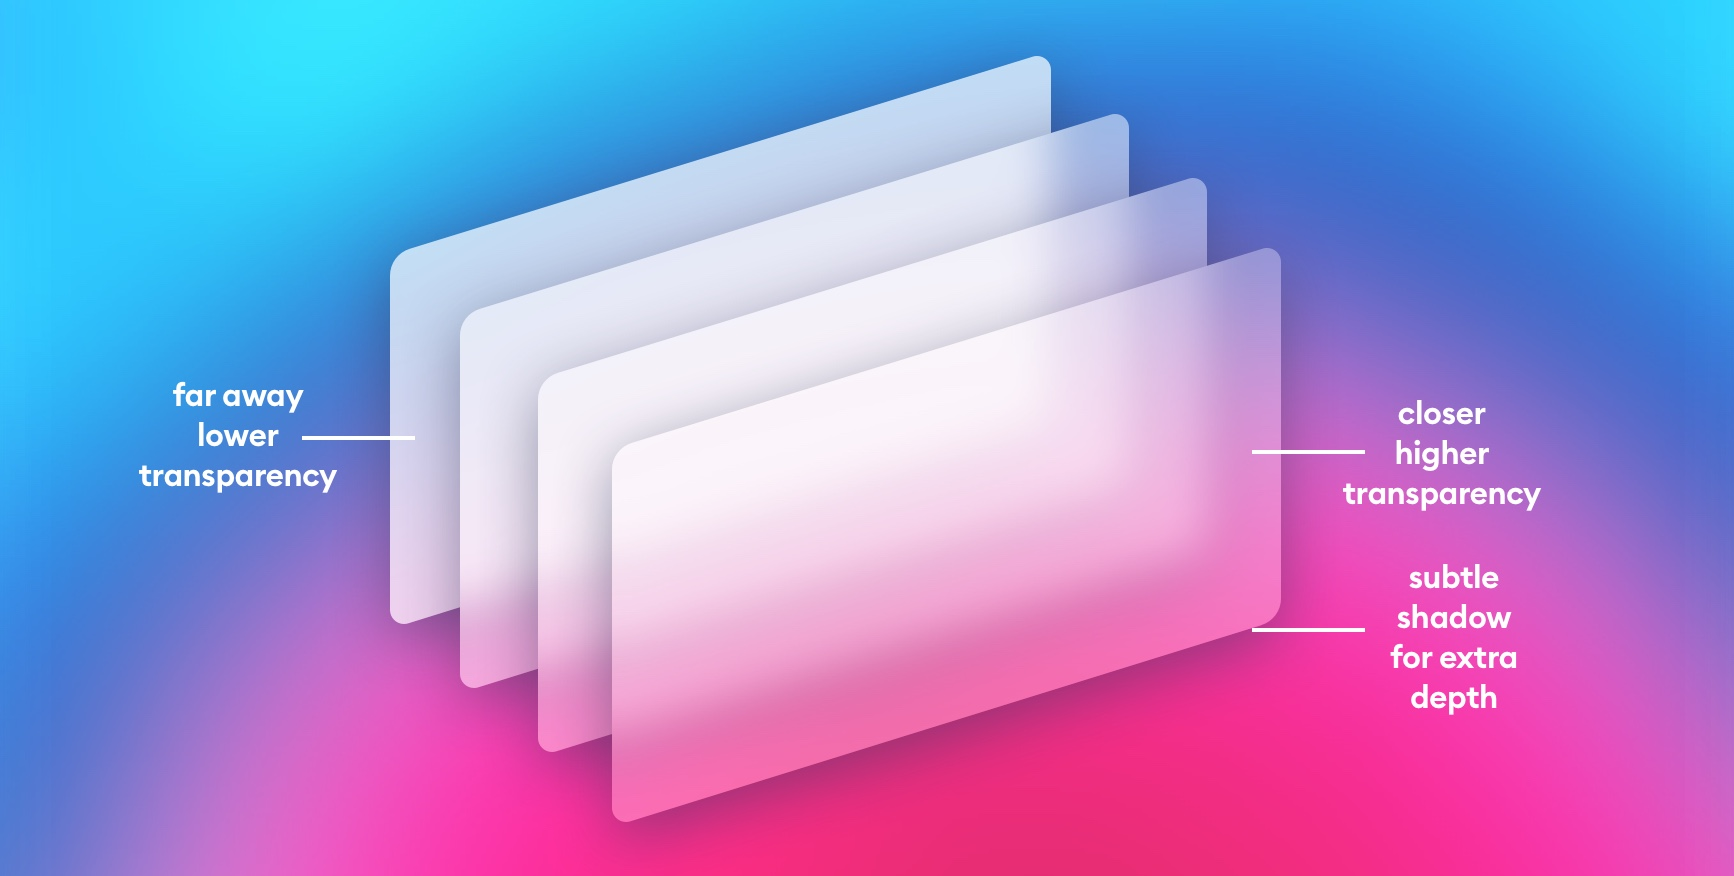 Glassmorphism layers - how to achieve the right balance